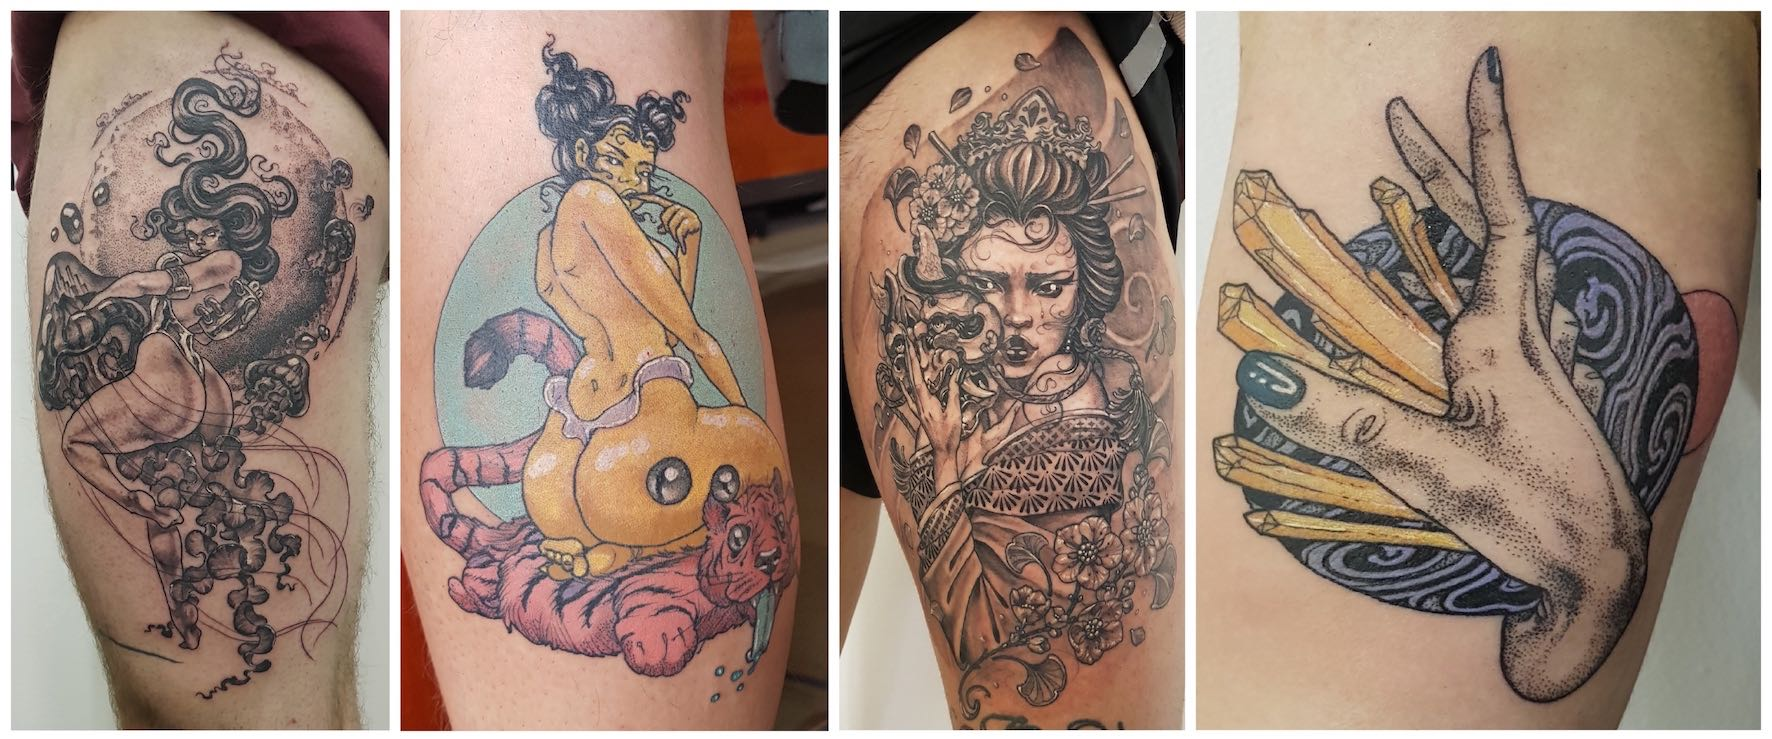 A selection of tattoos done by Séona Stewart